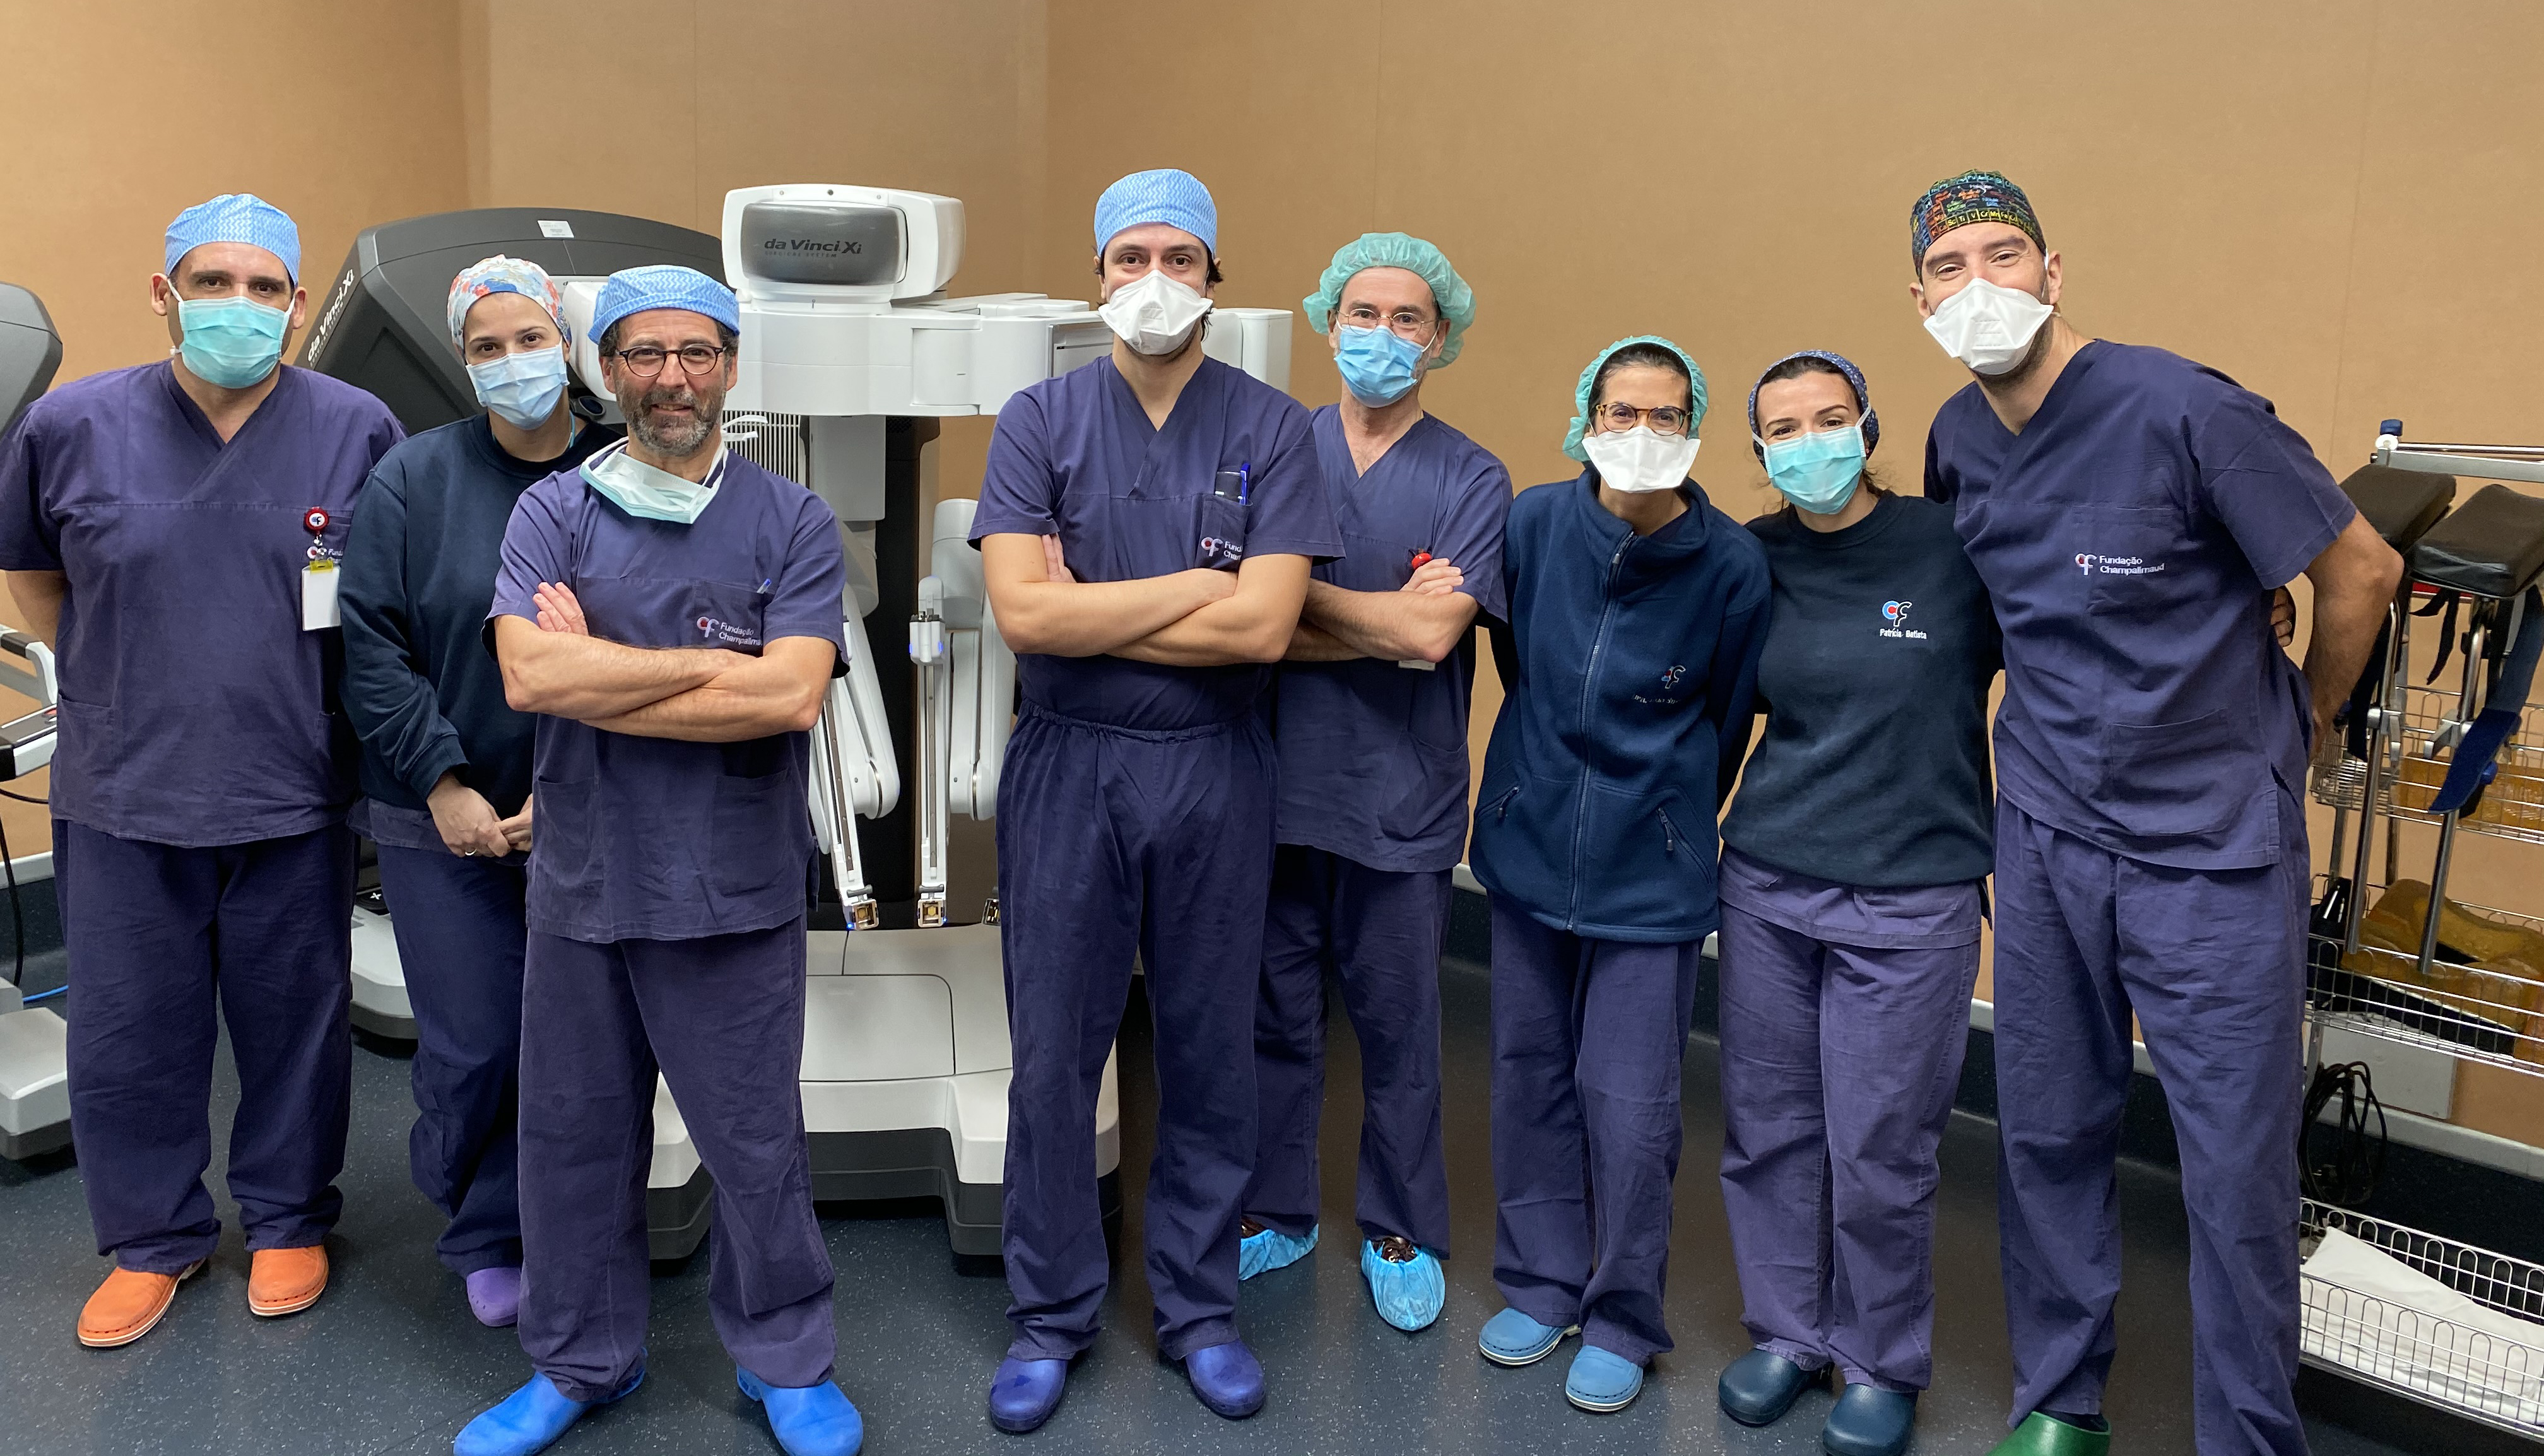 Robotic surgery in oncologic gynaecology